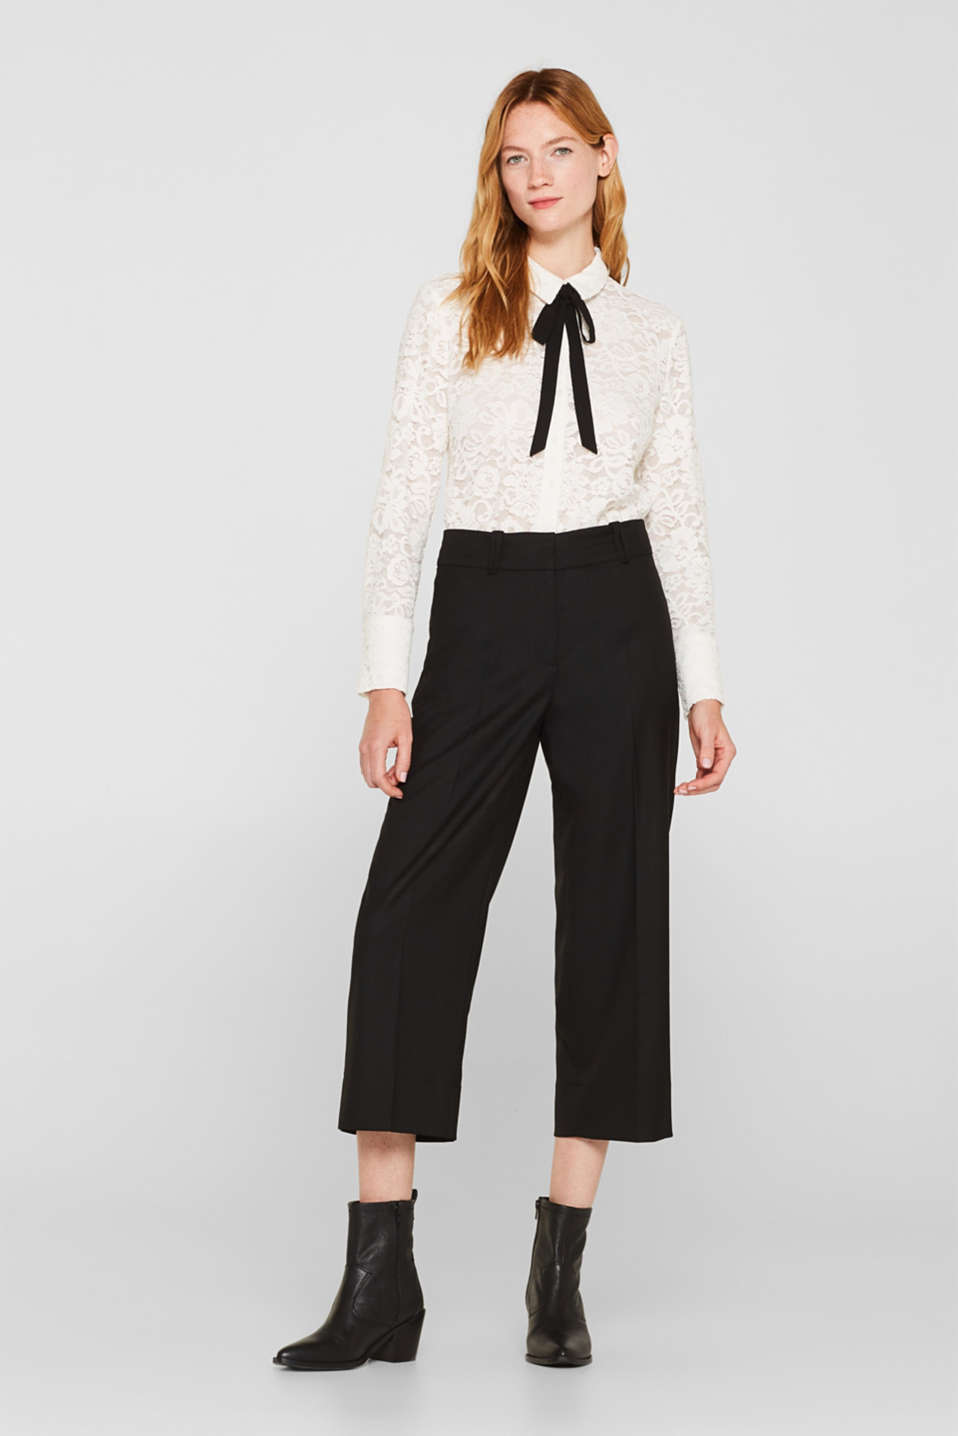 Culottes with a high waist and stretch